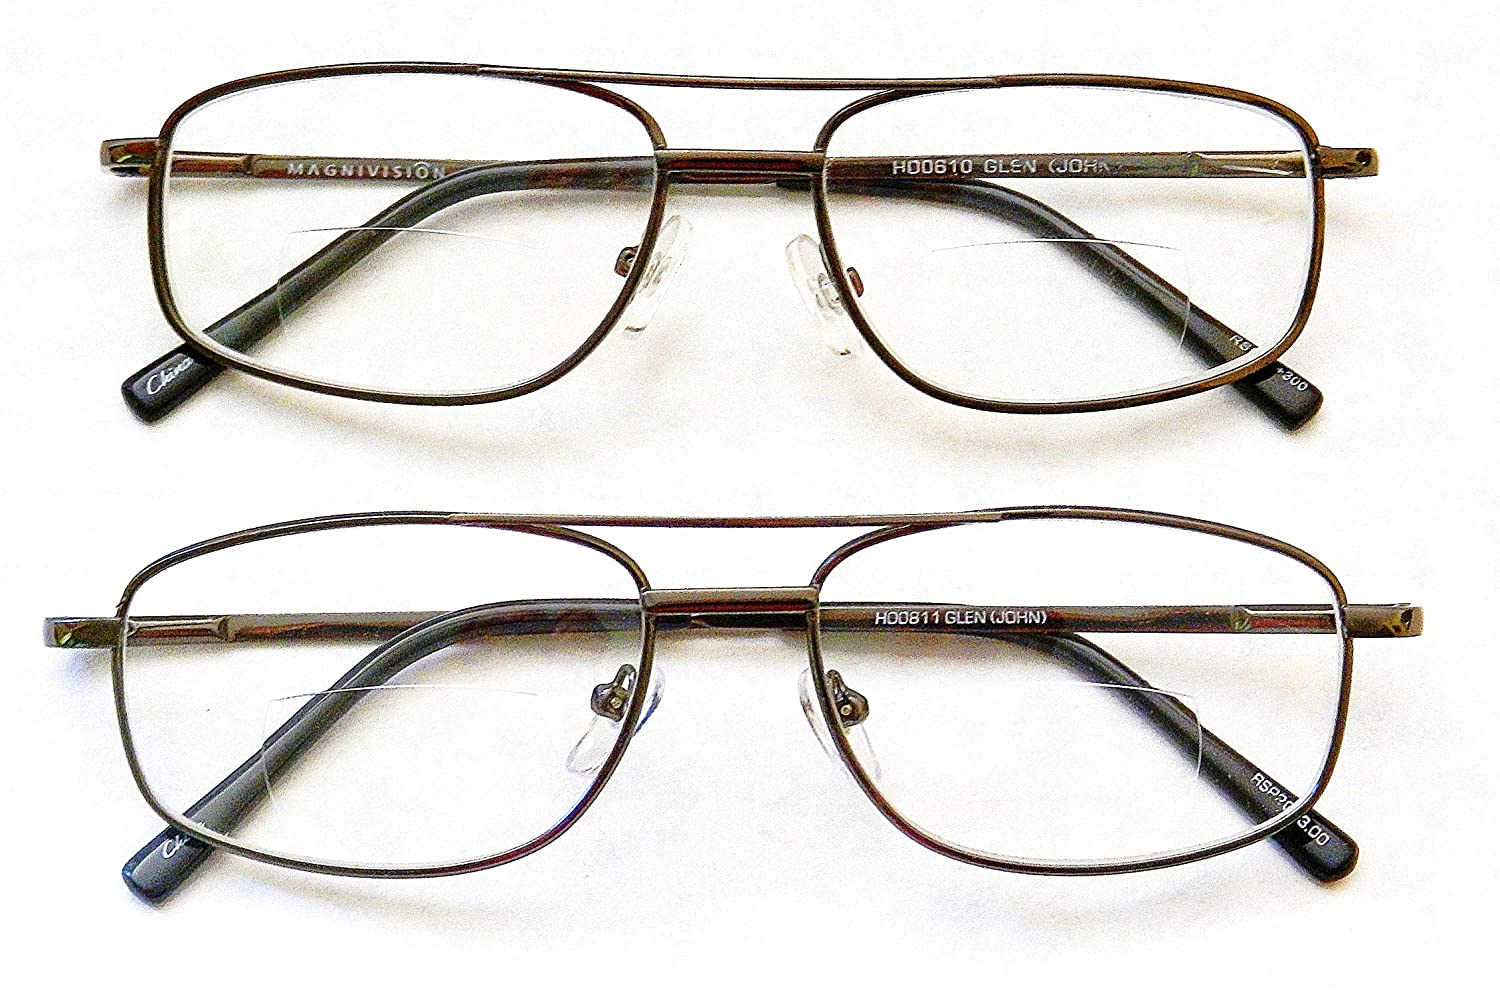 (2 PACK) Magnivision 1.50 BIFOCALS Traditional Clear Reading Glasses with Spring Hinges-